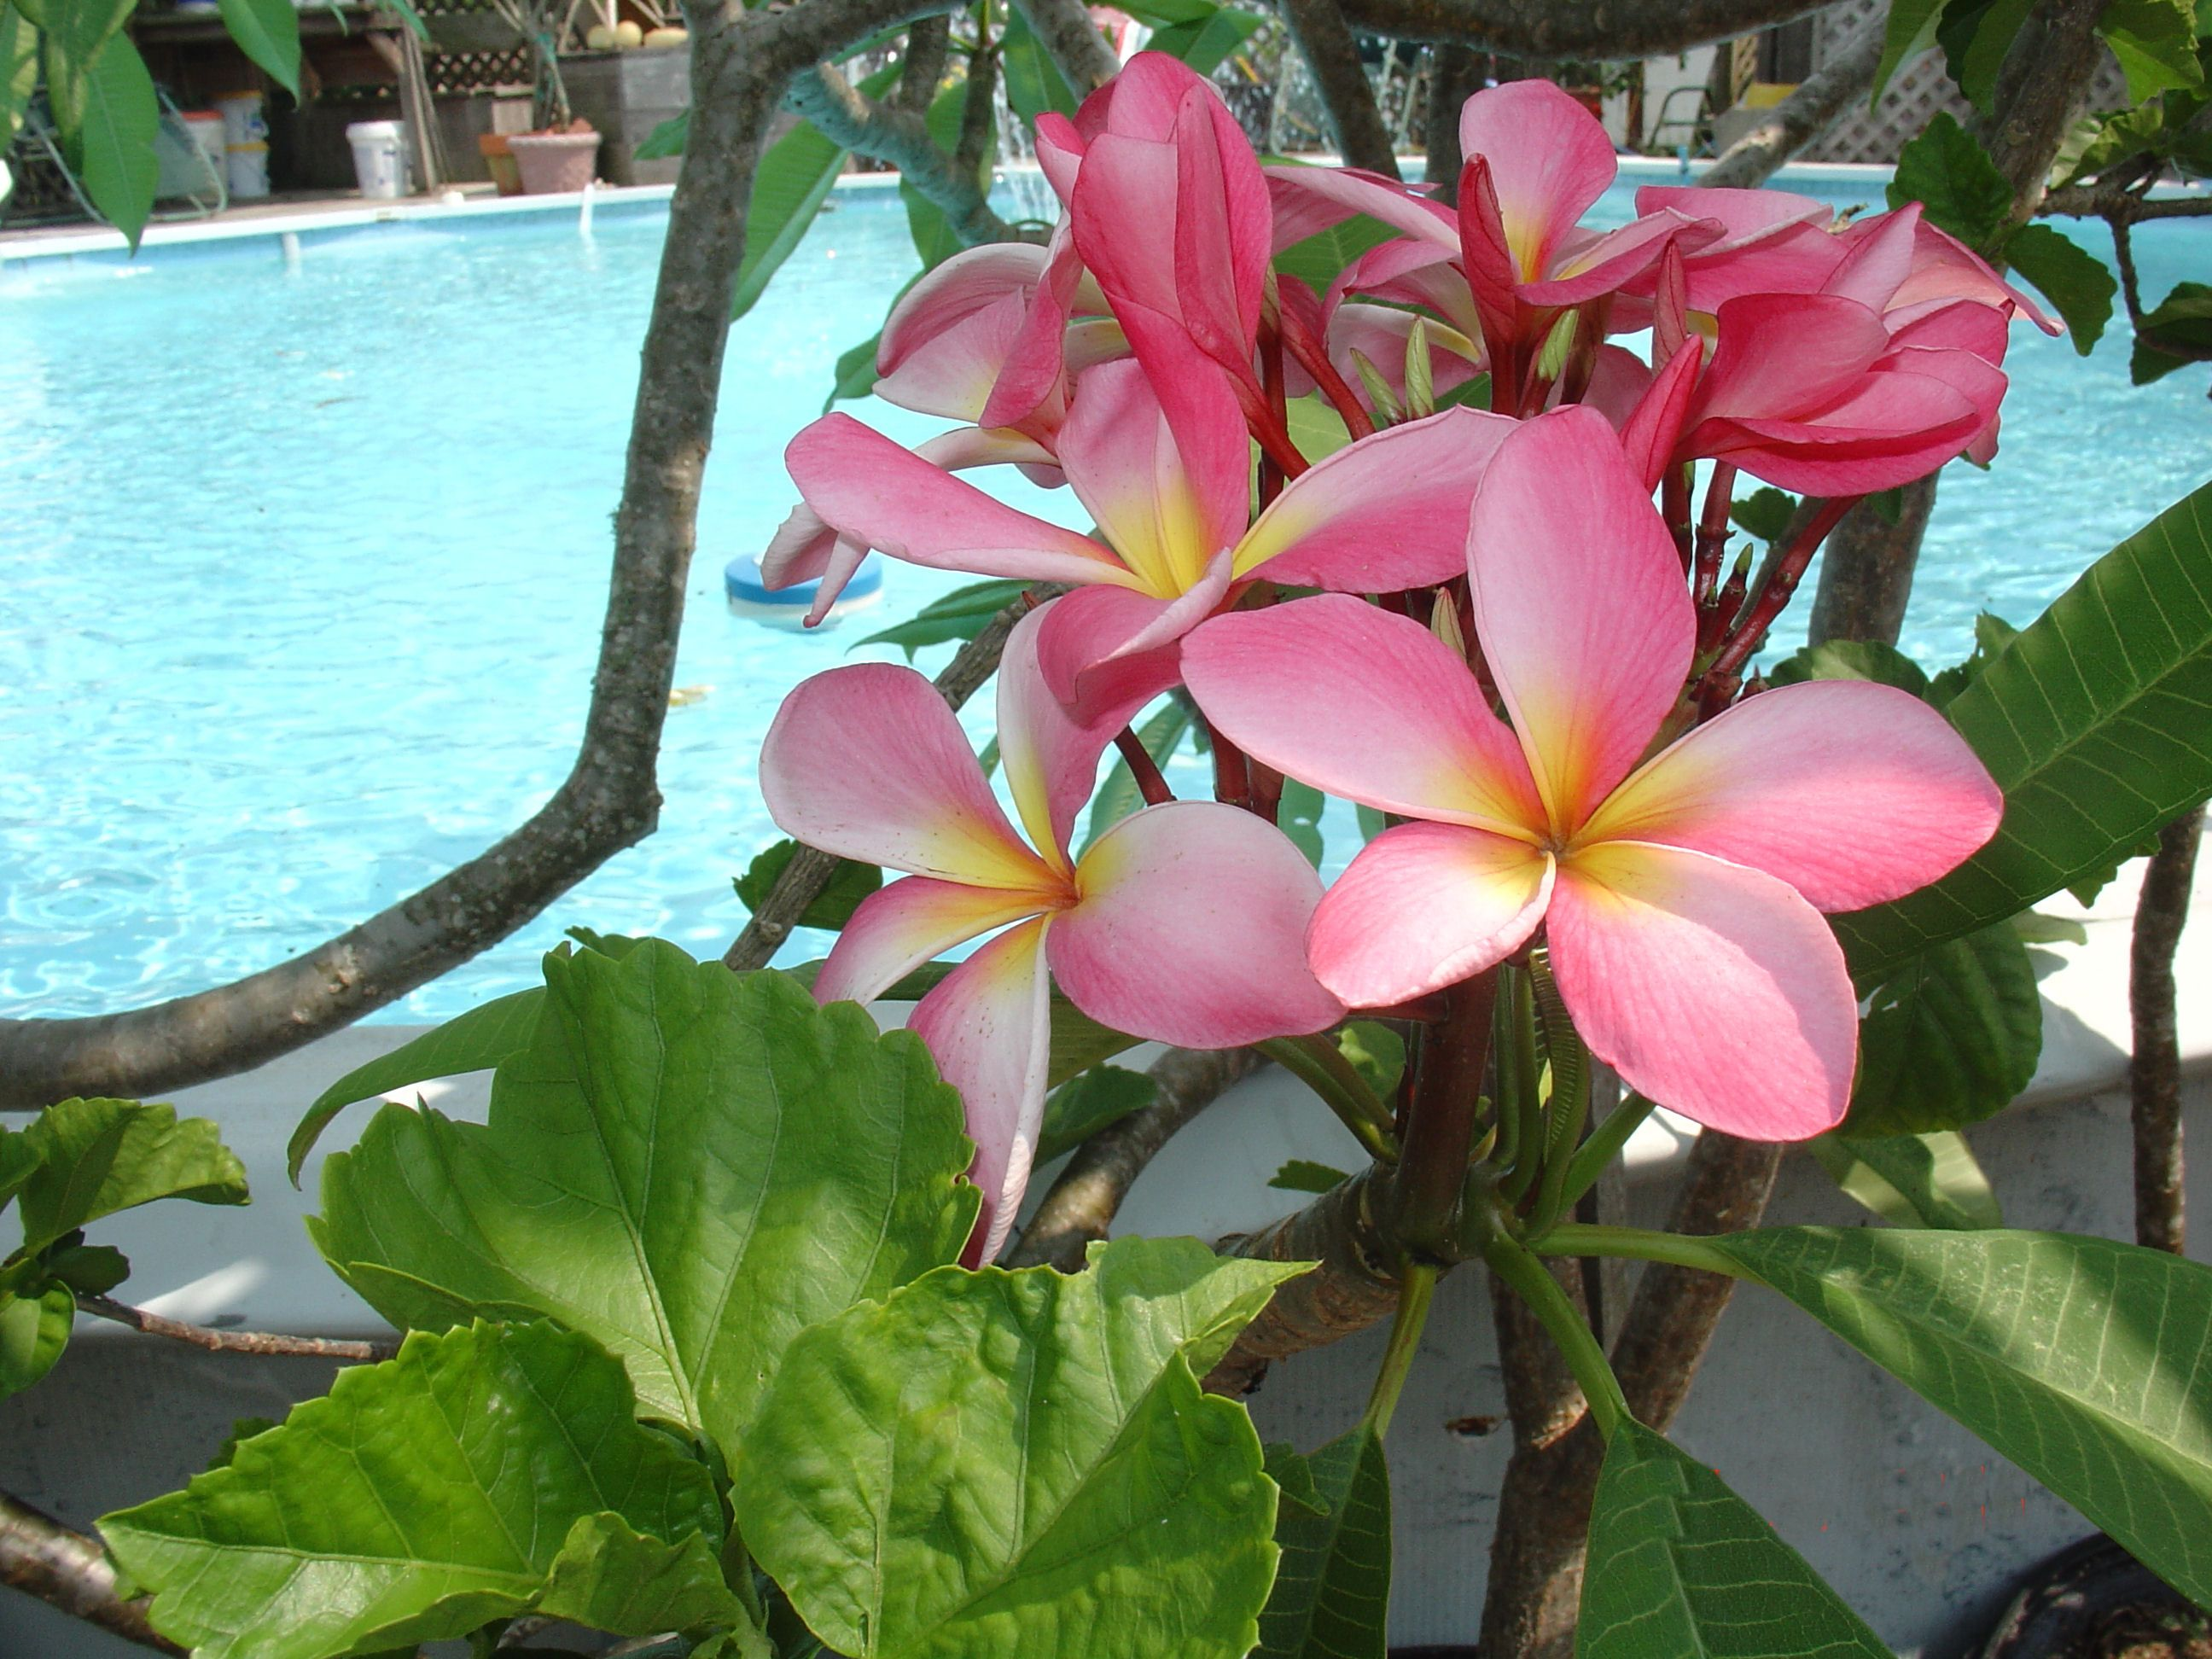 Plumeria S Are One Of My Favorite Plants I Love To Put Them Around Pool Have Own Tropical Getaway